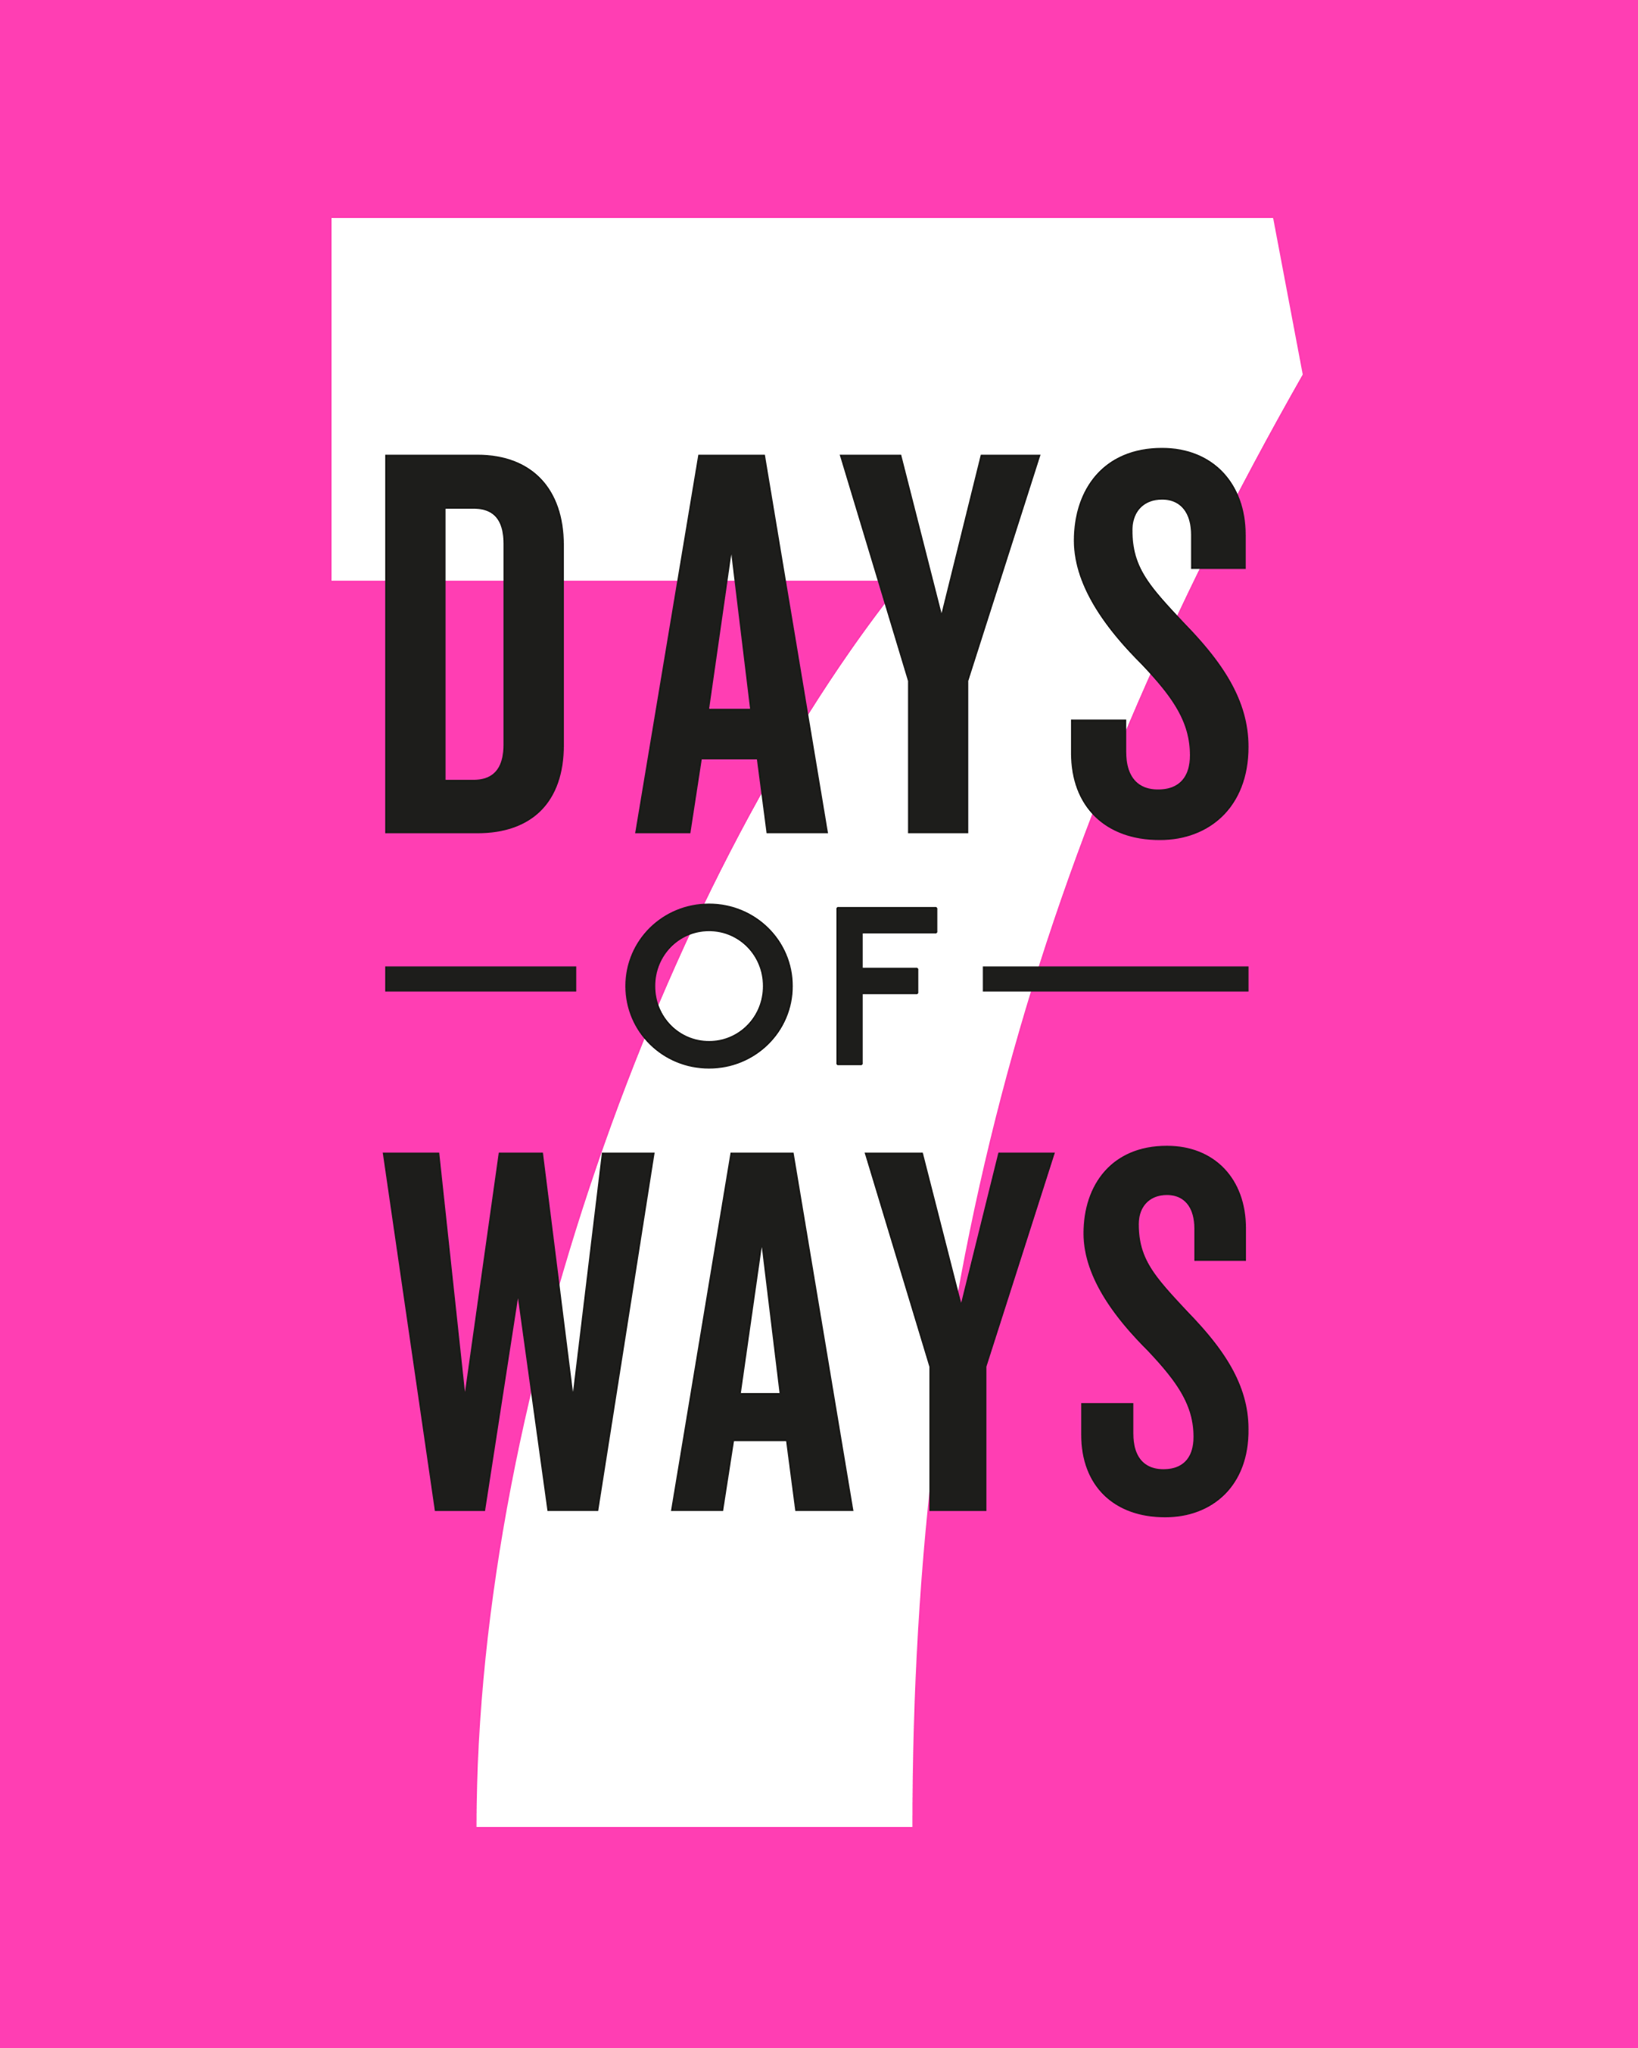 Jamie Oliver - '7 Days of 7 Ways' is about ...